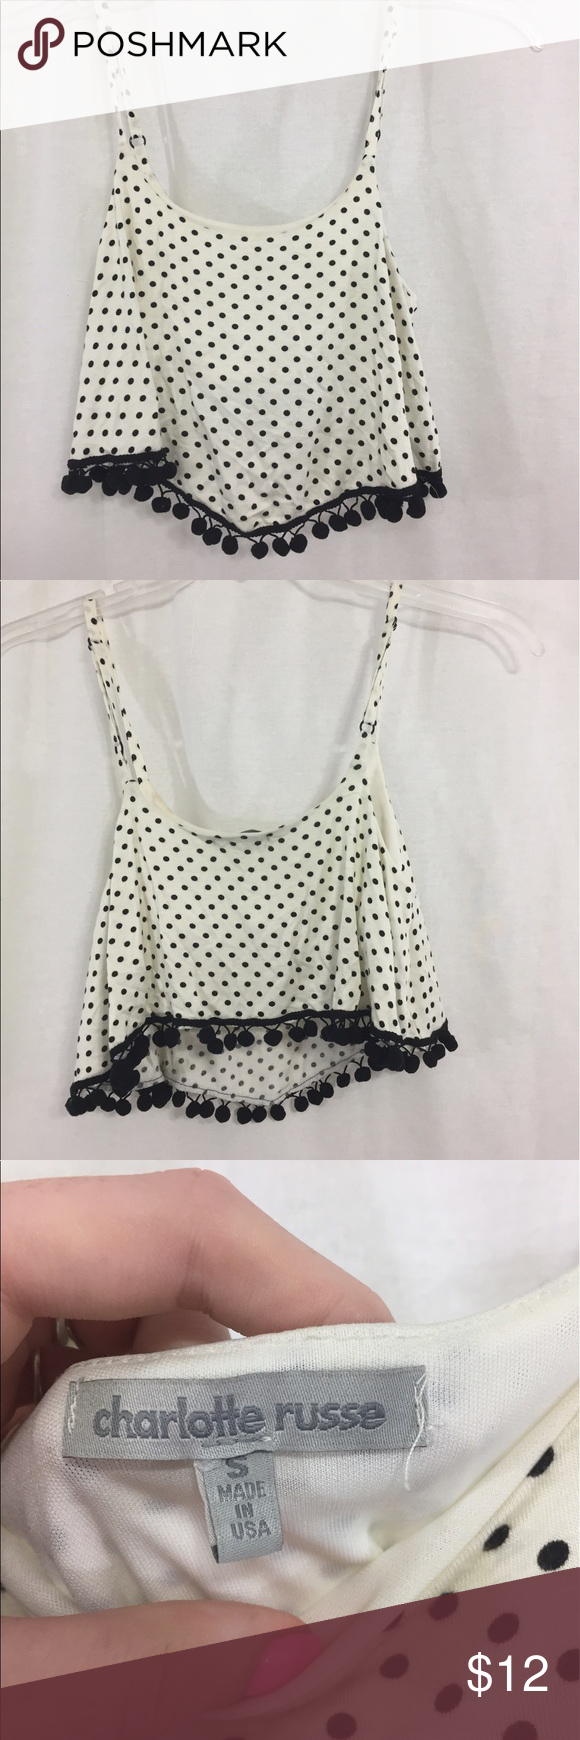 Charlotte Russe Polka Dot Pom Pom Top Size small Charlotte Russe Tops Crop Tops